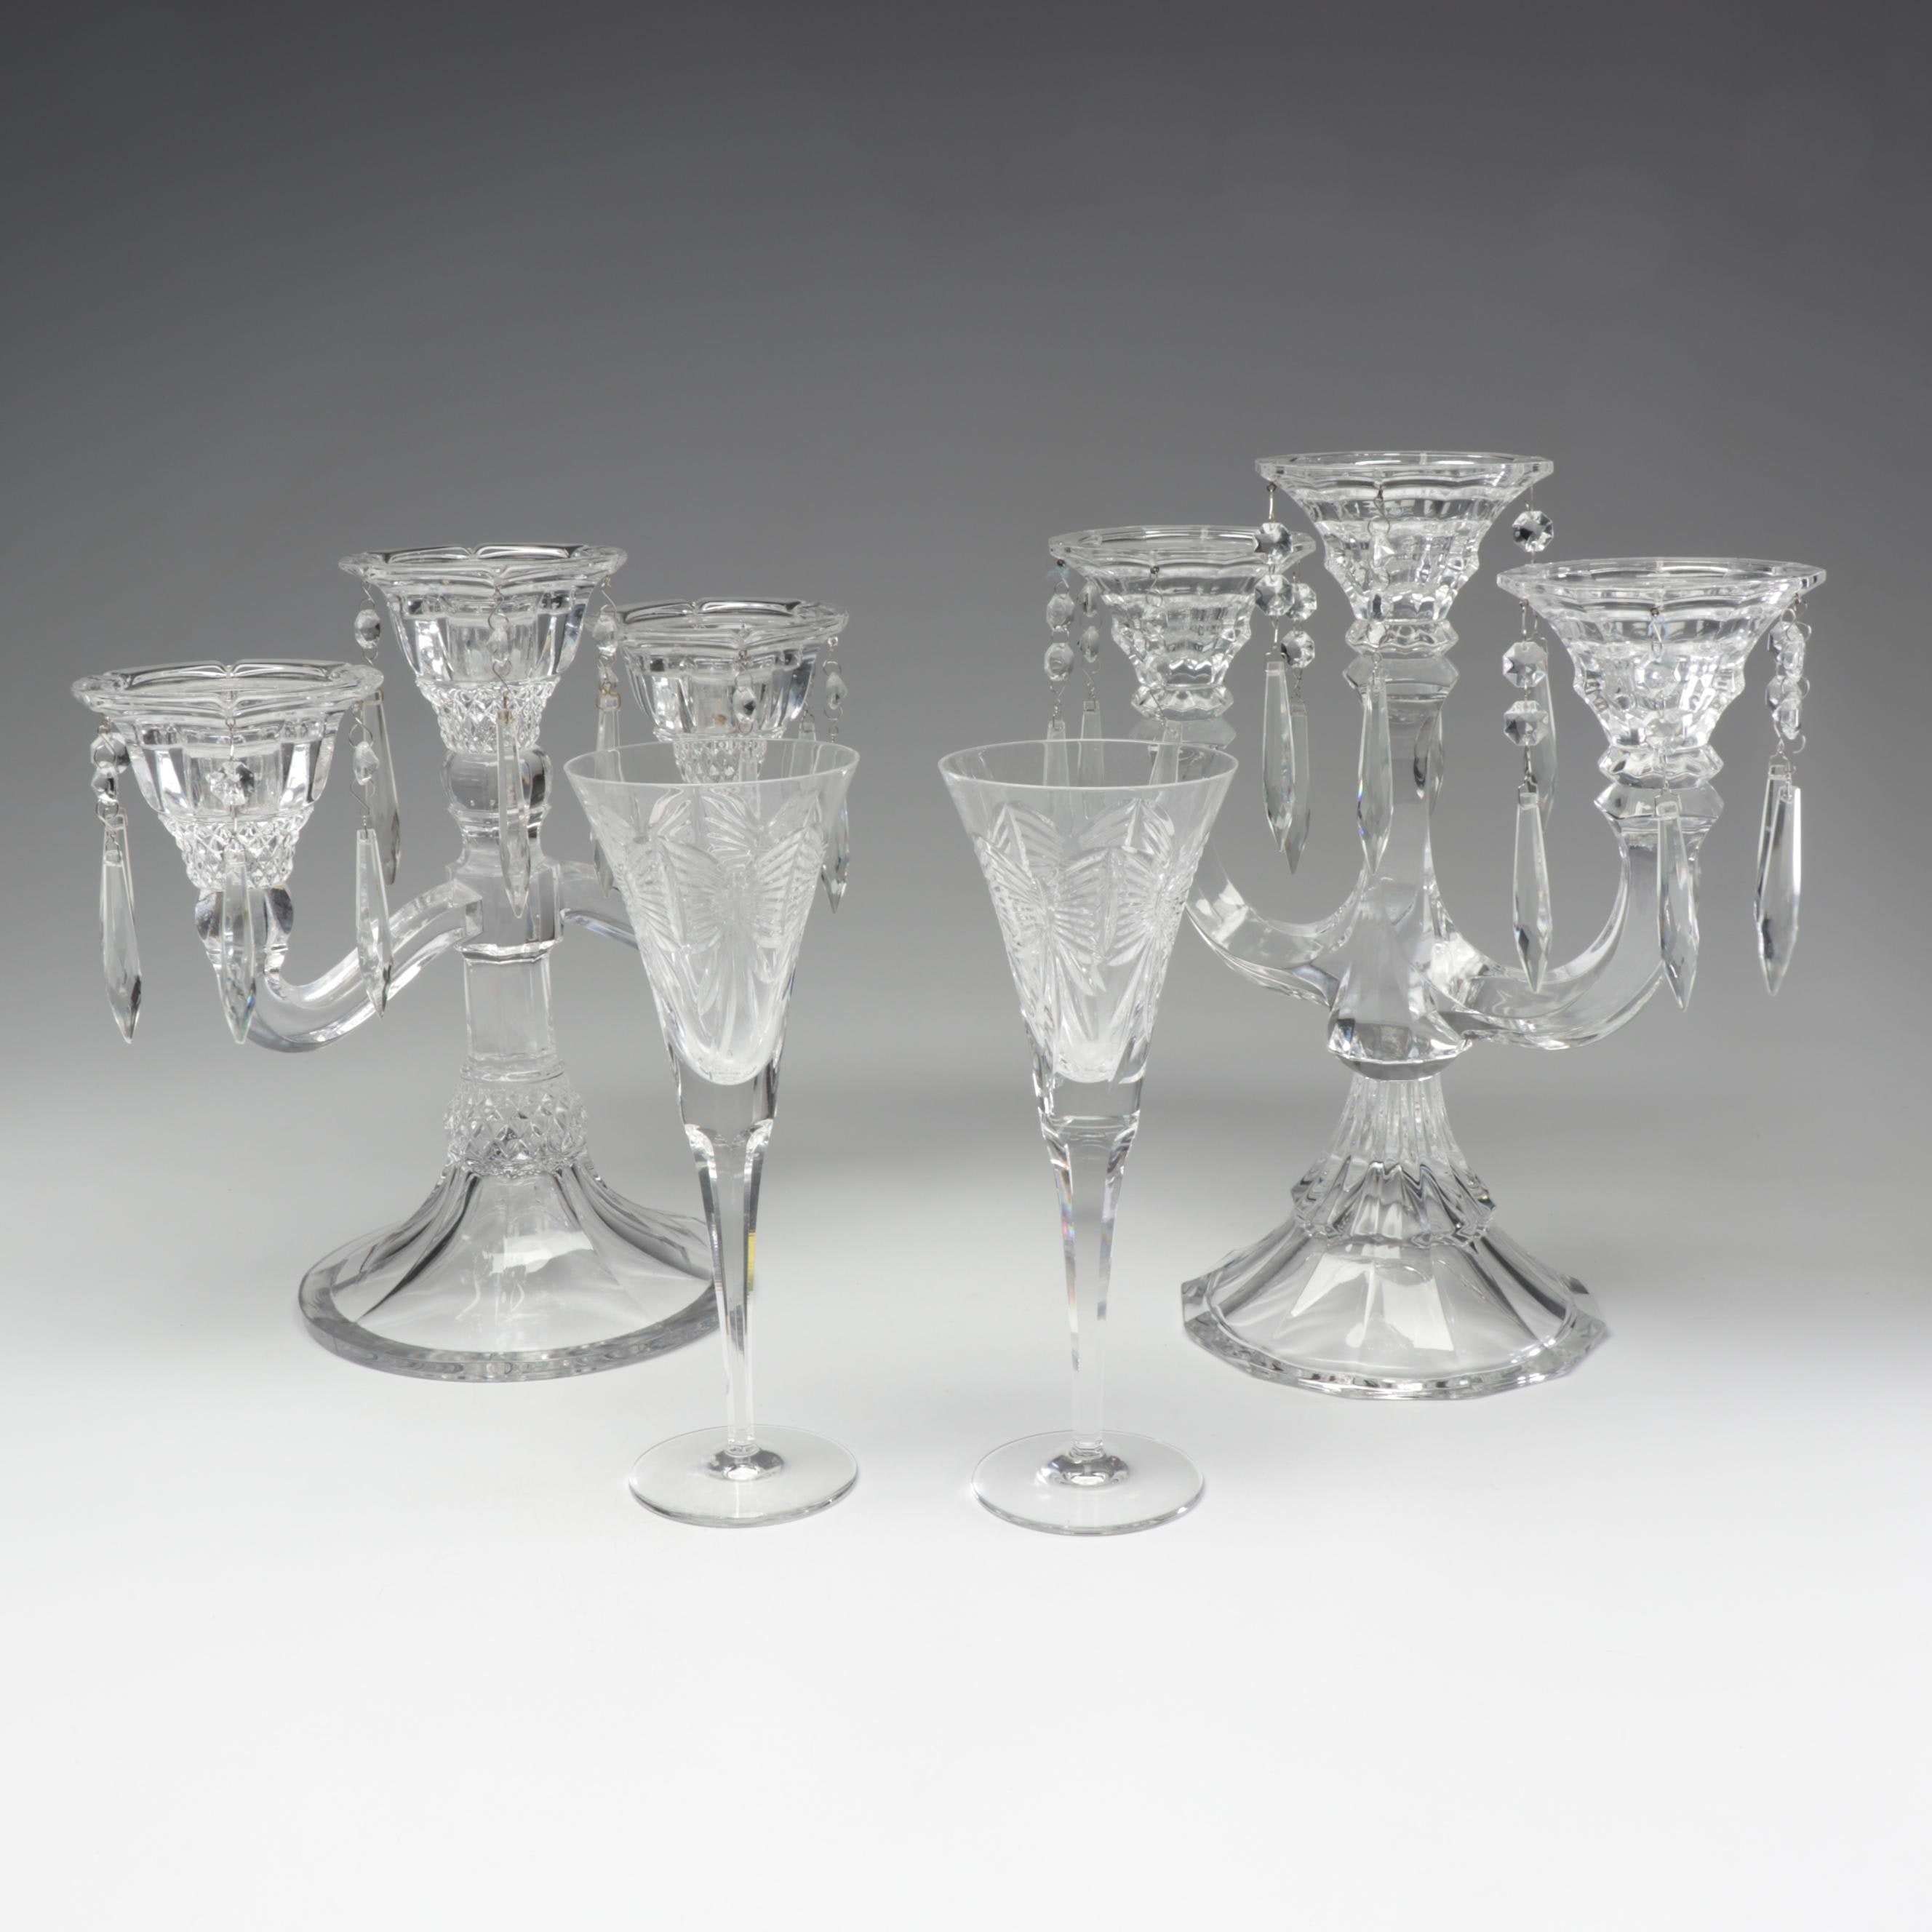 """Waterford Crystal Millennium """"Happiness"""" Champagne Flutes & Crystal Candelabras"""